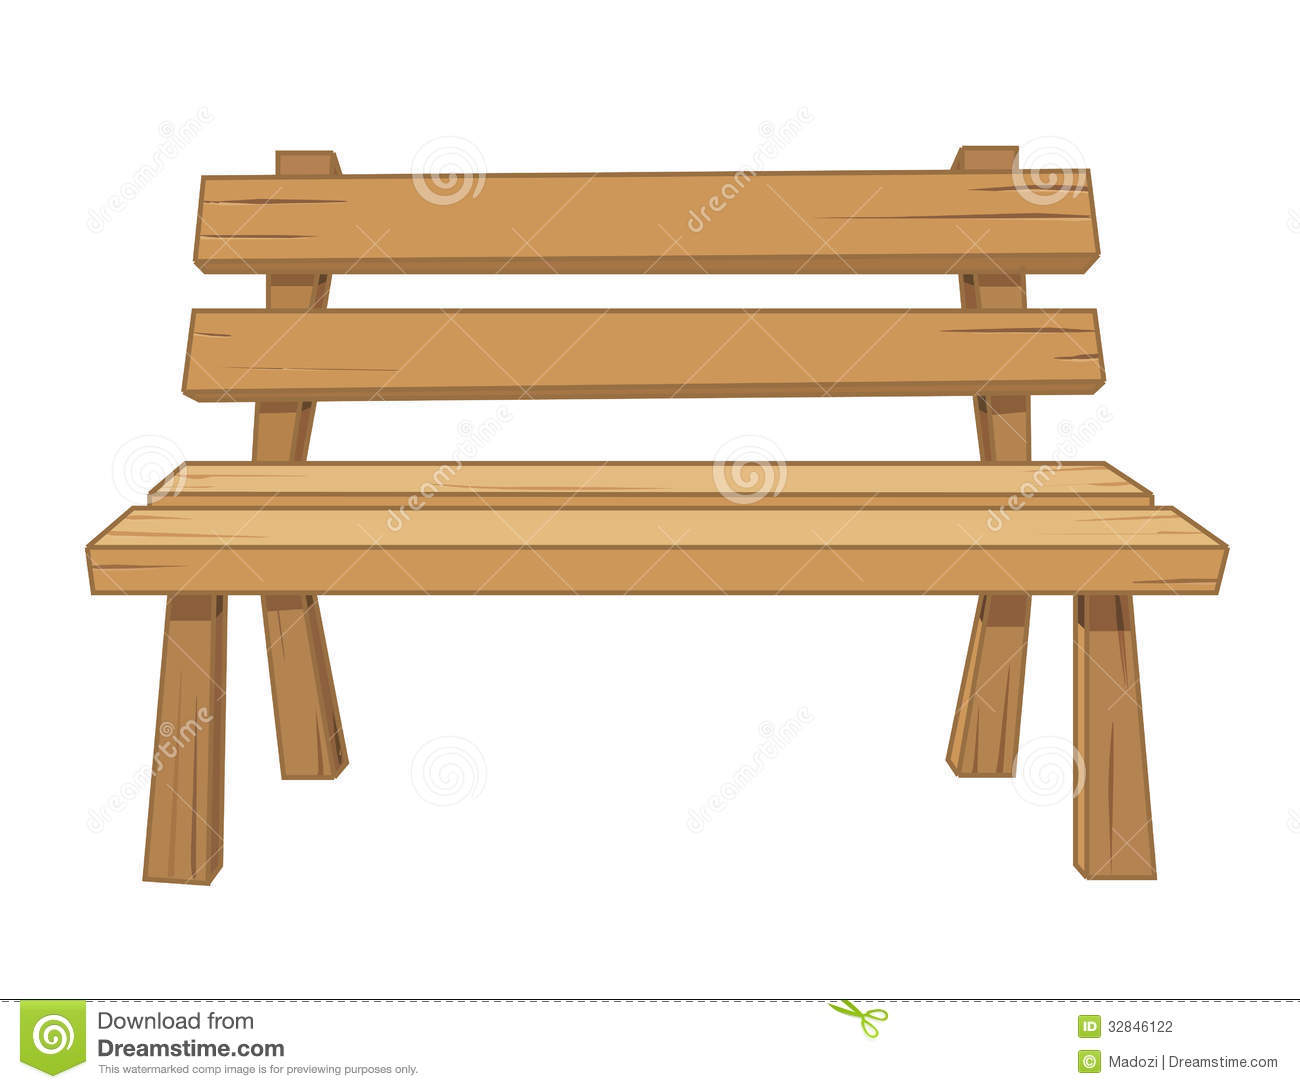 Bench clipart #7, Download drawings